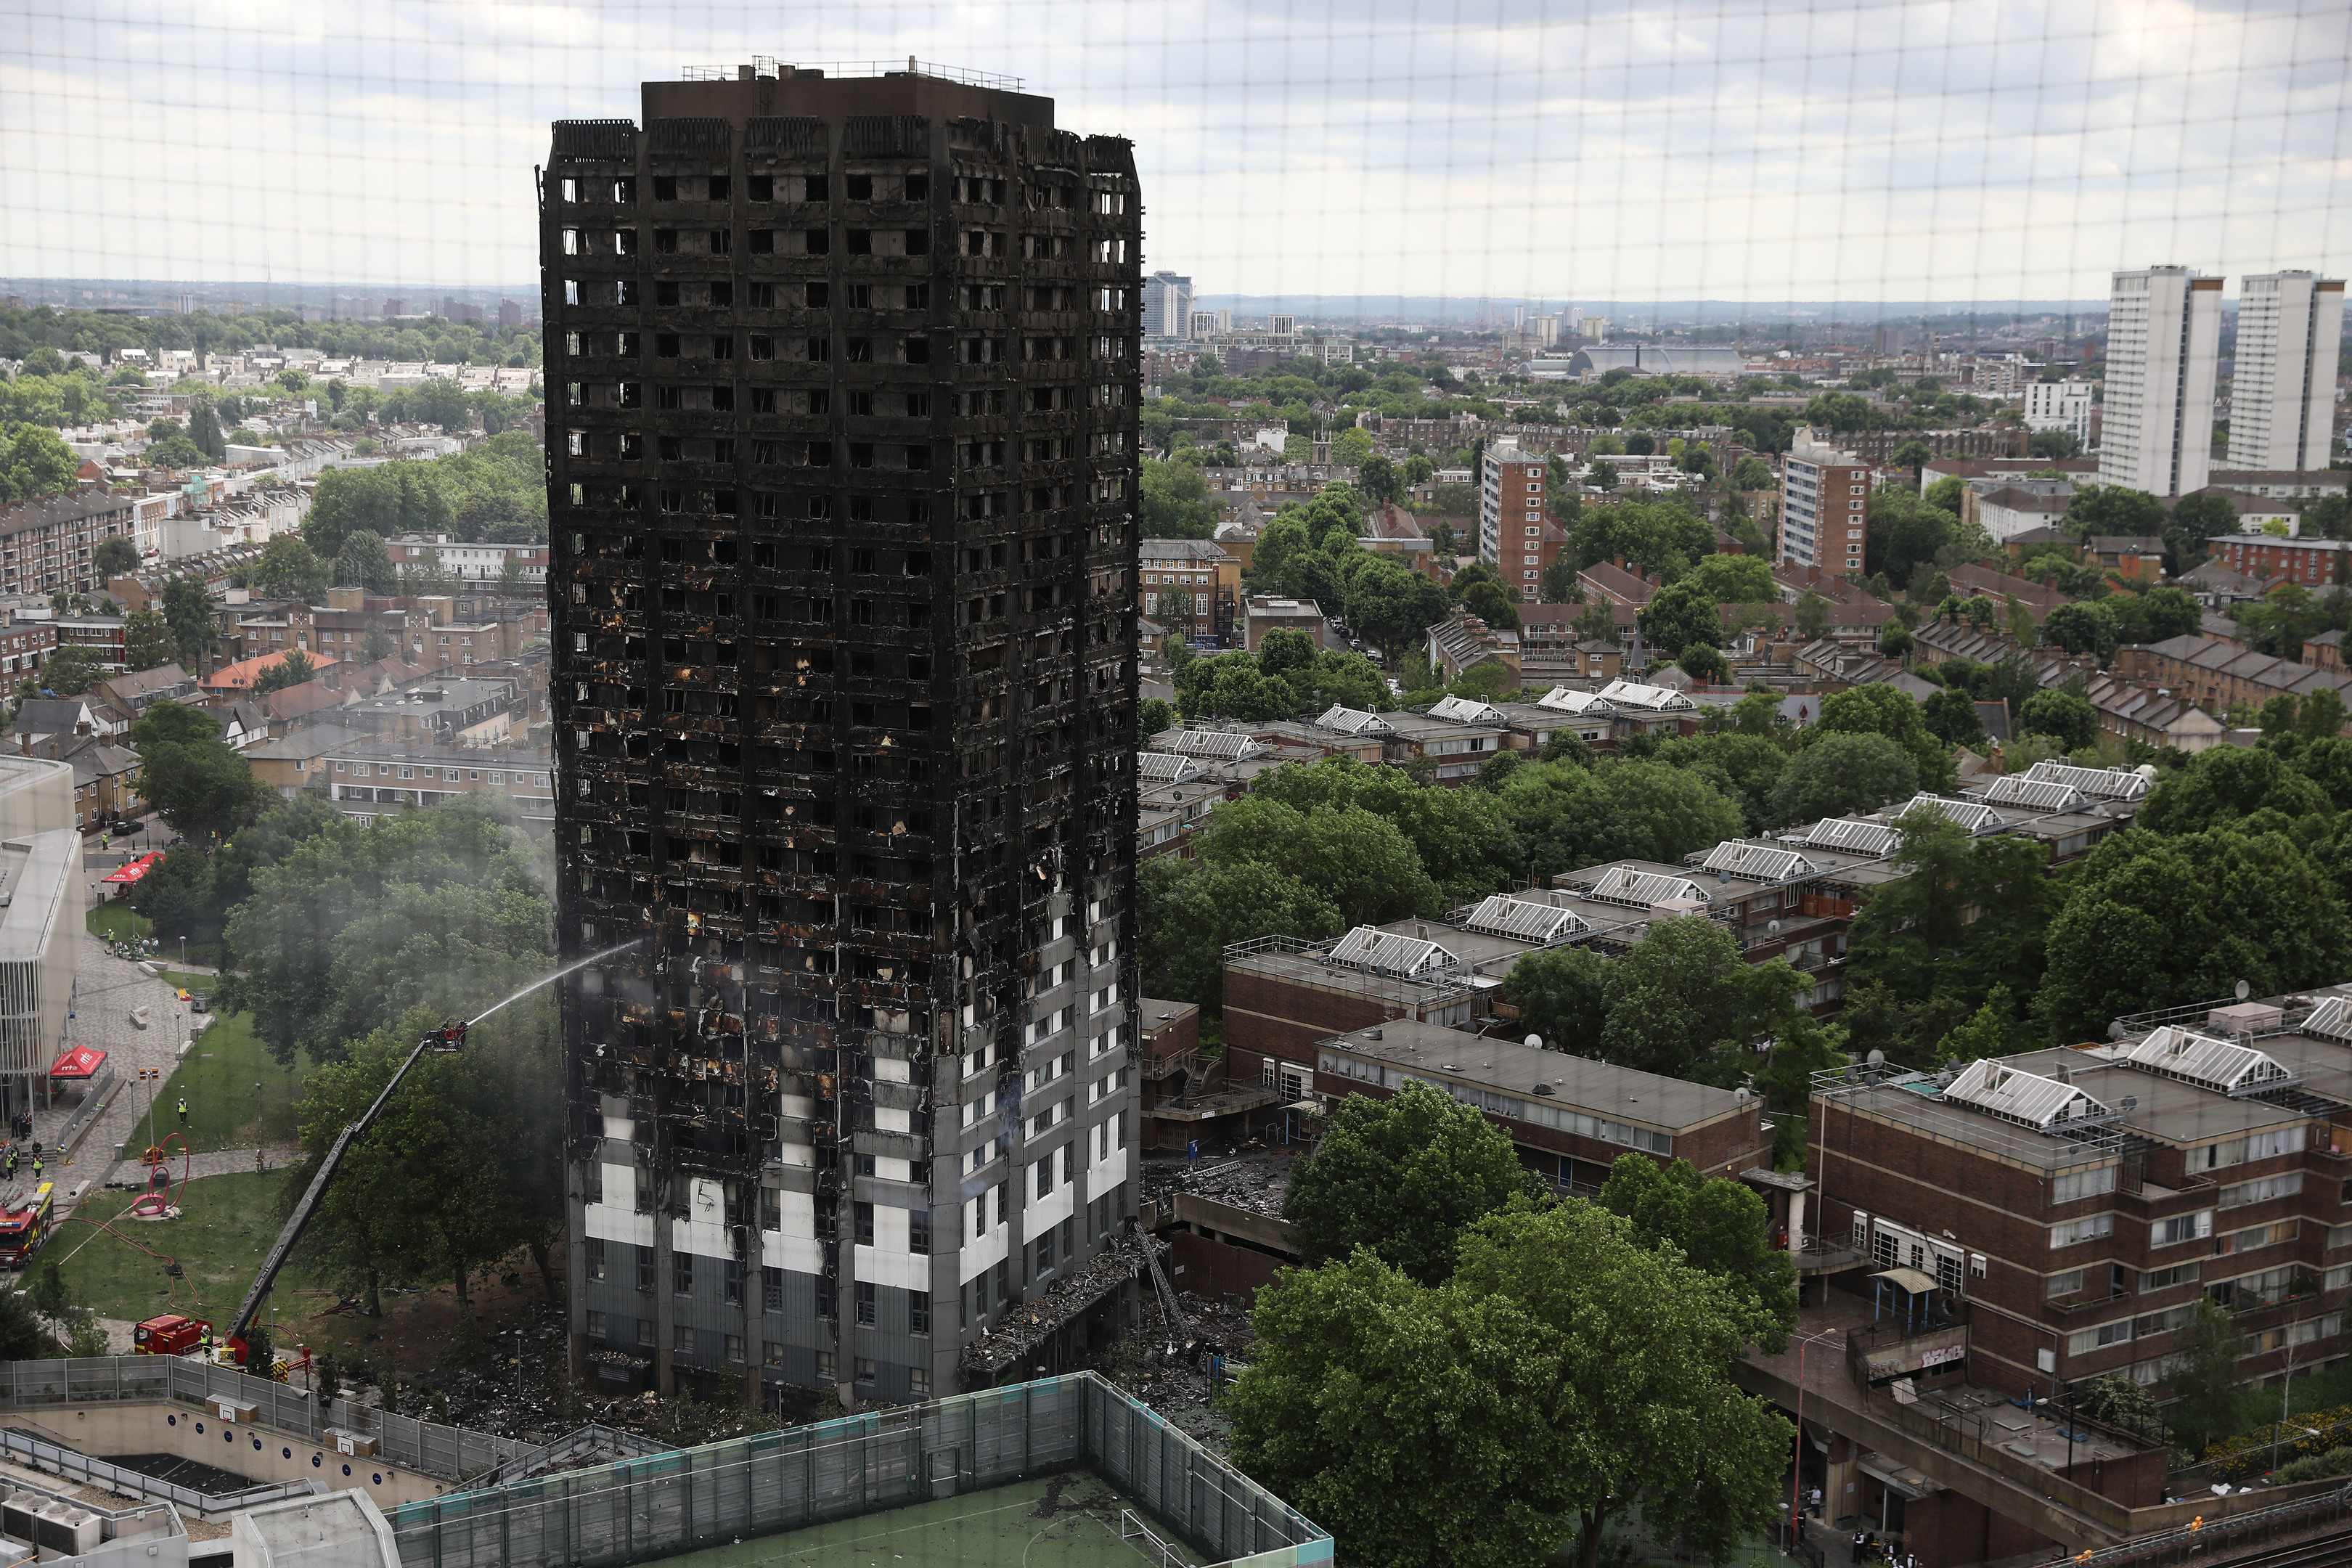 The blackened wreck of Grenfell Tower.